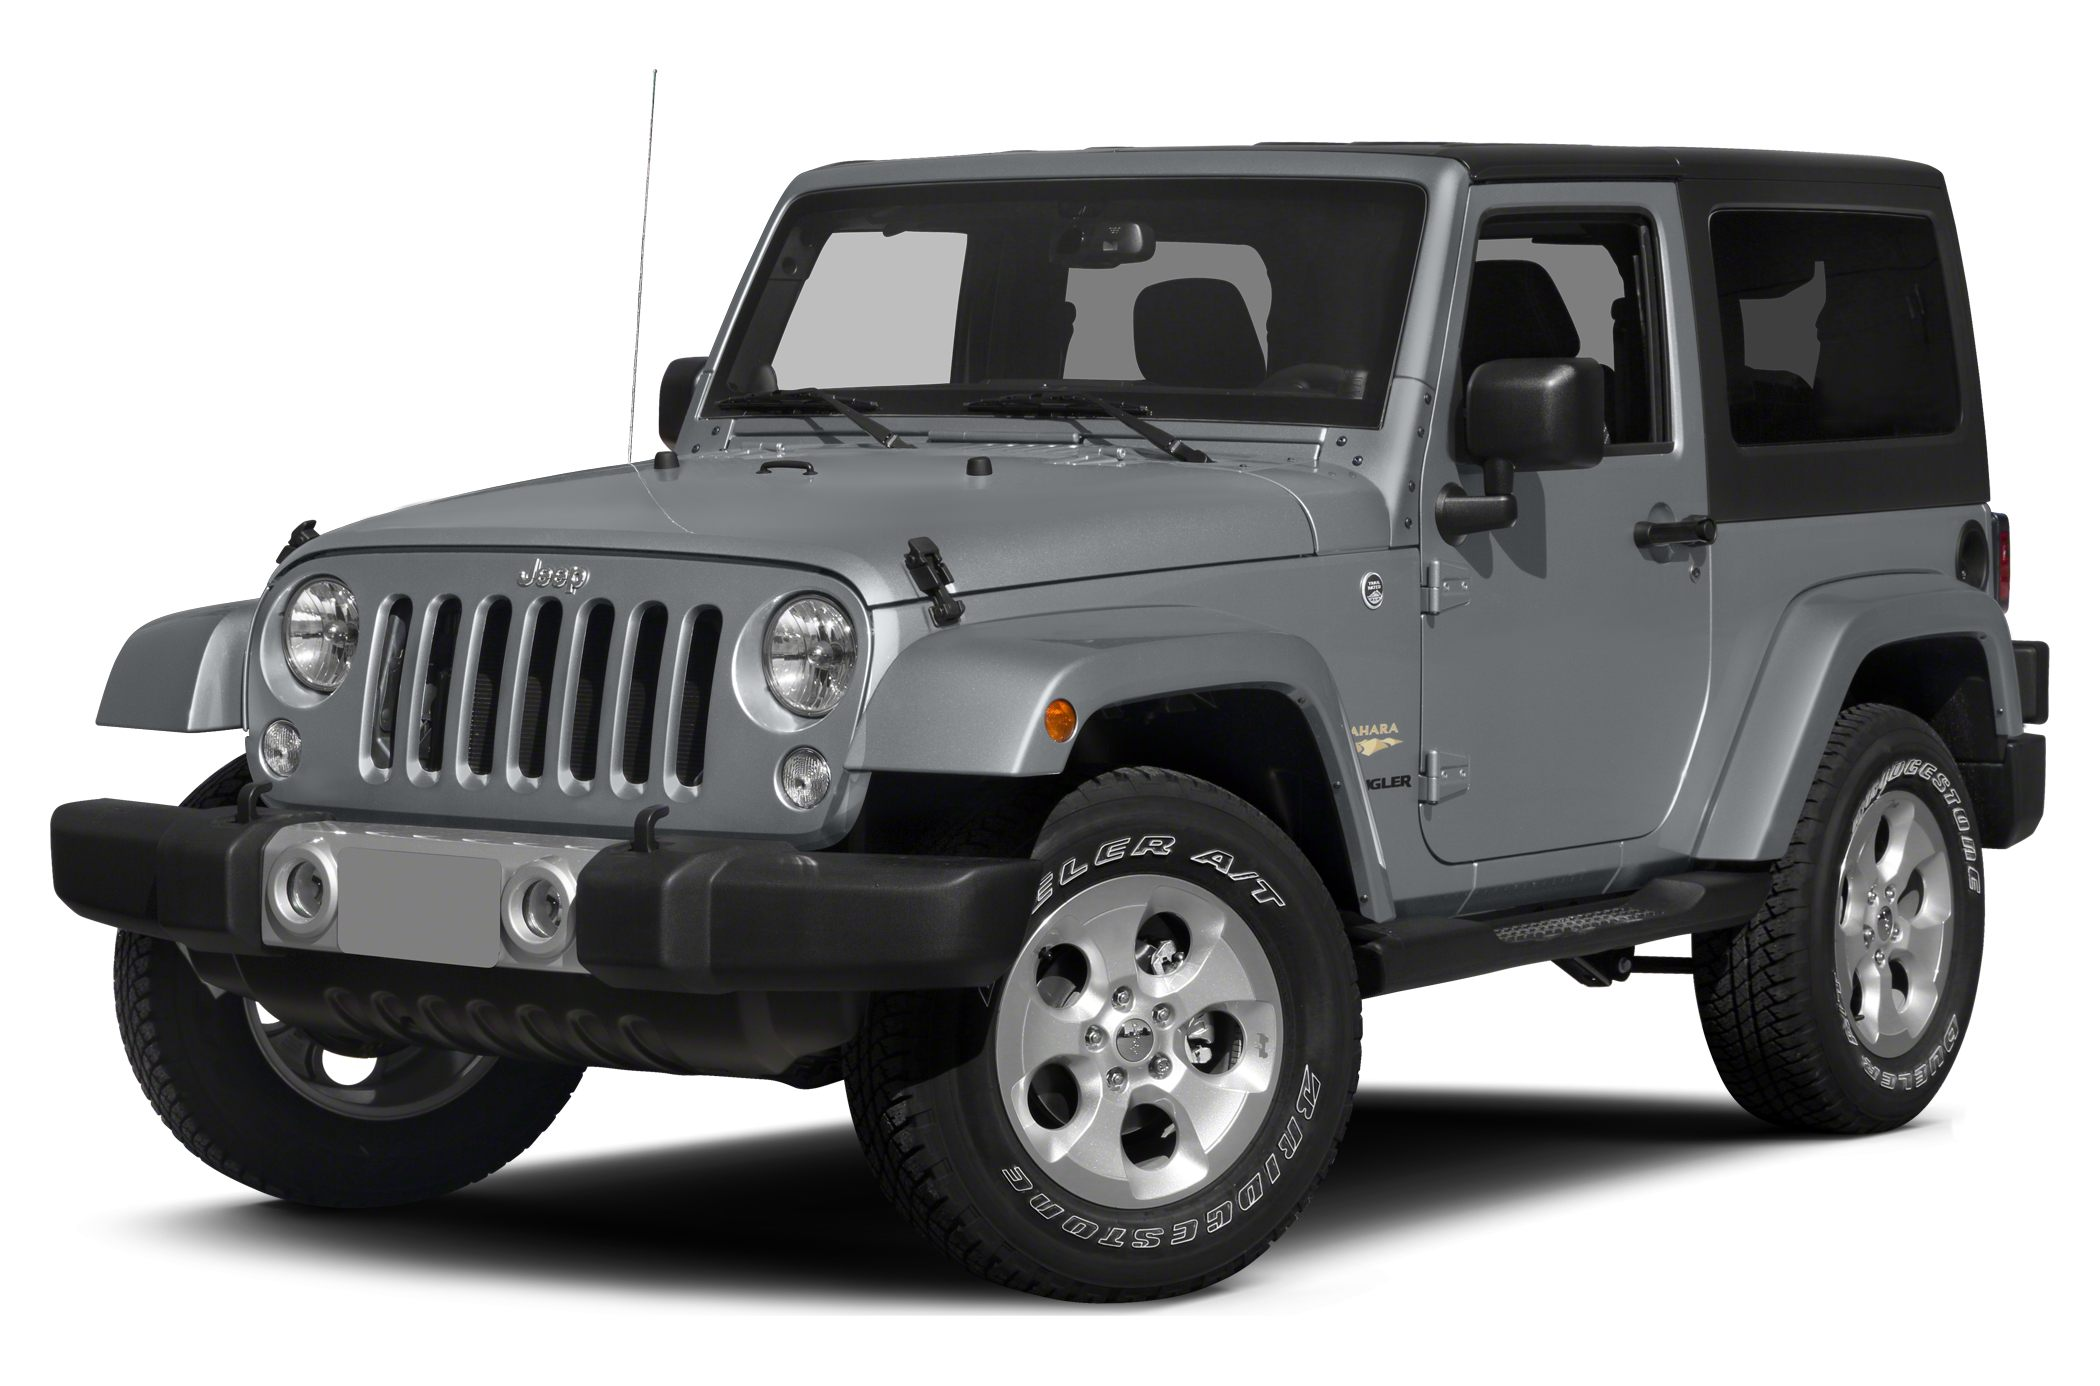 2014 Jeep Wrangler Sport SUV for sale in New Britain for $32,460 with 10 miles